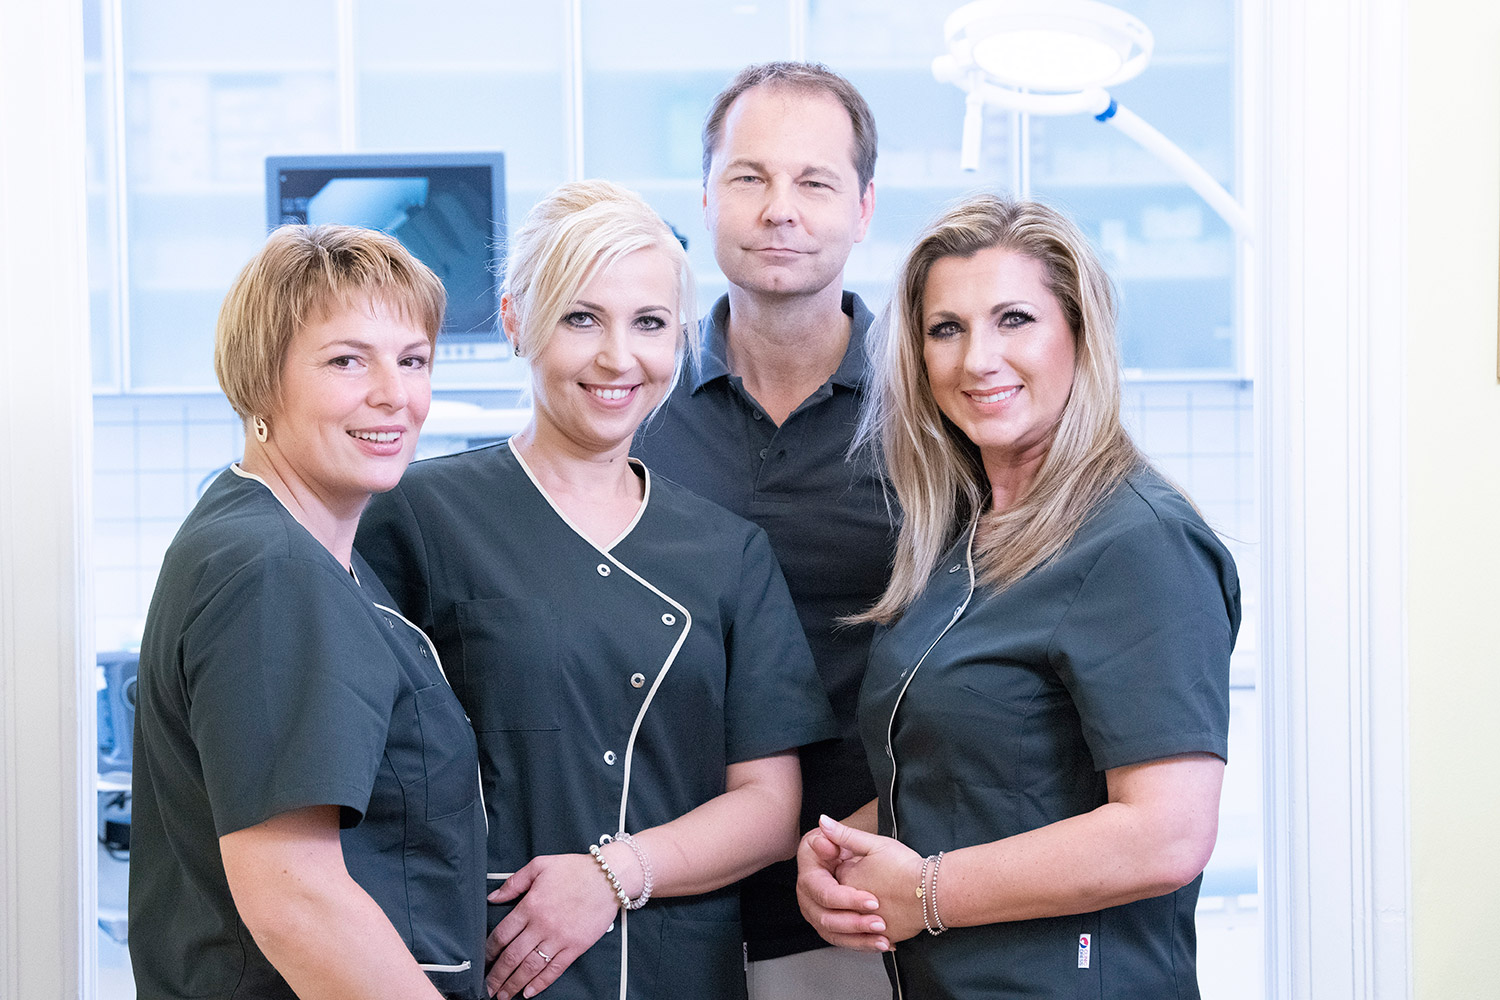 Dr. Filipitsch with his team